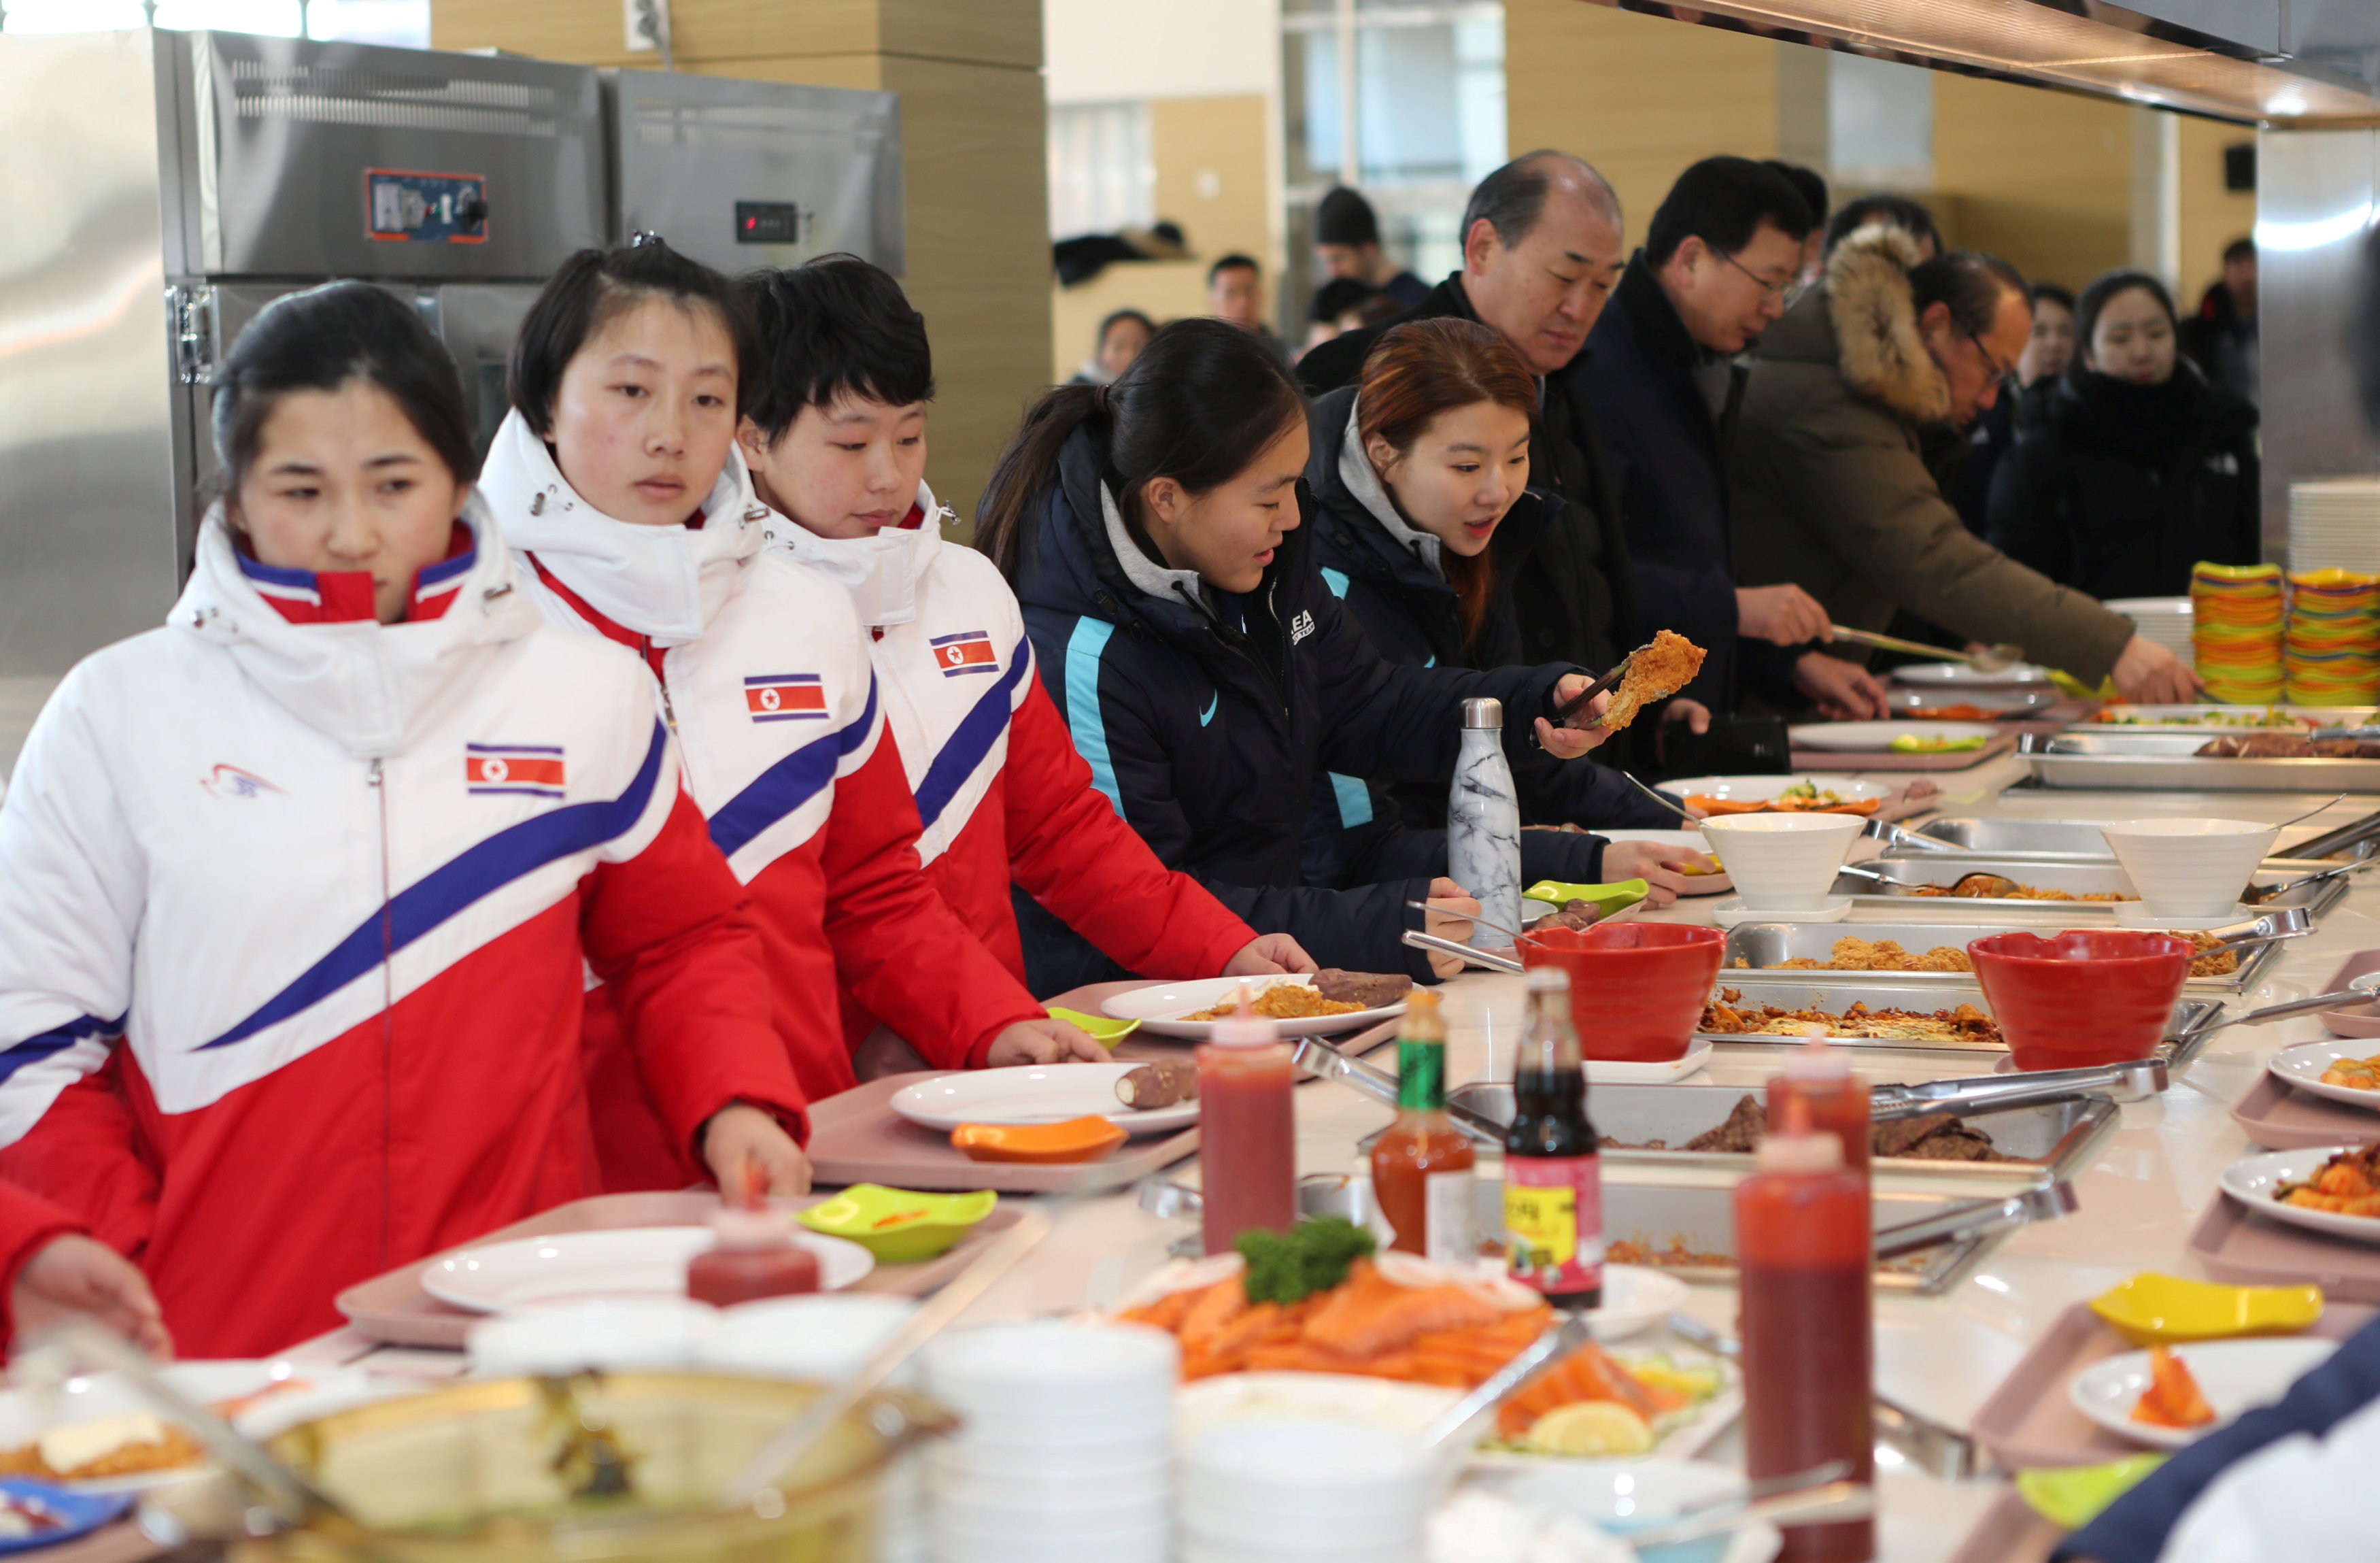 North and South Korea women's ice hockey athletes stand in a line at a dining hall at the Jincheon National Training Centre in Jincheon, South Korea January 25, 2018